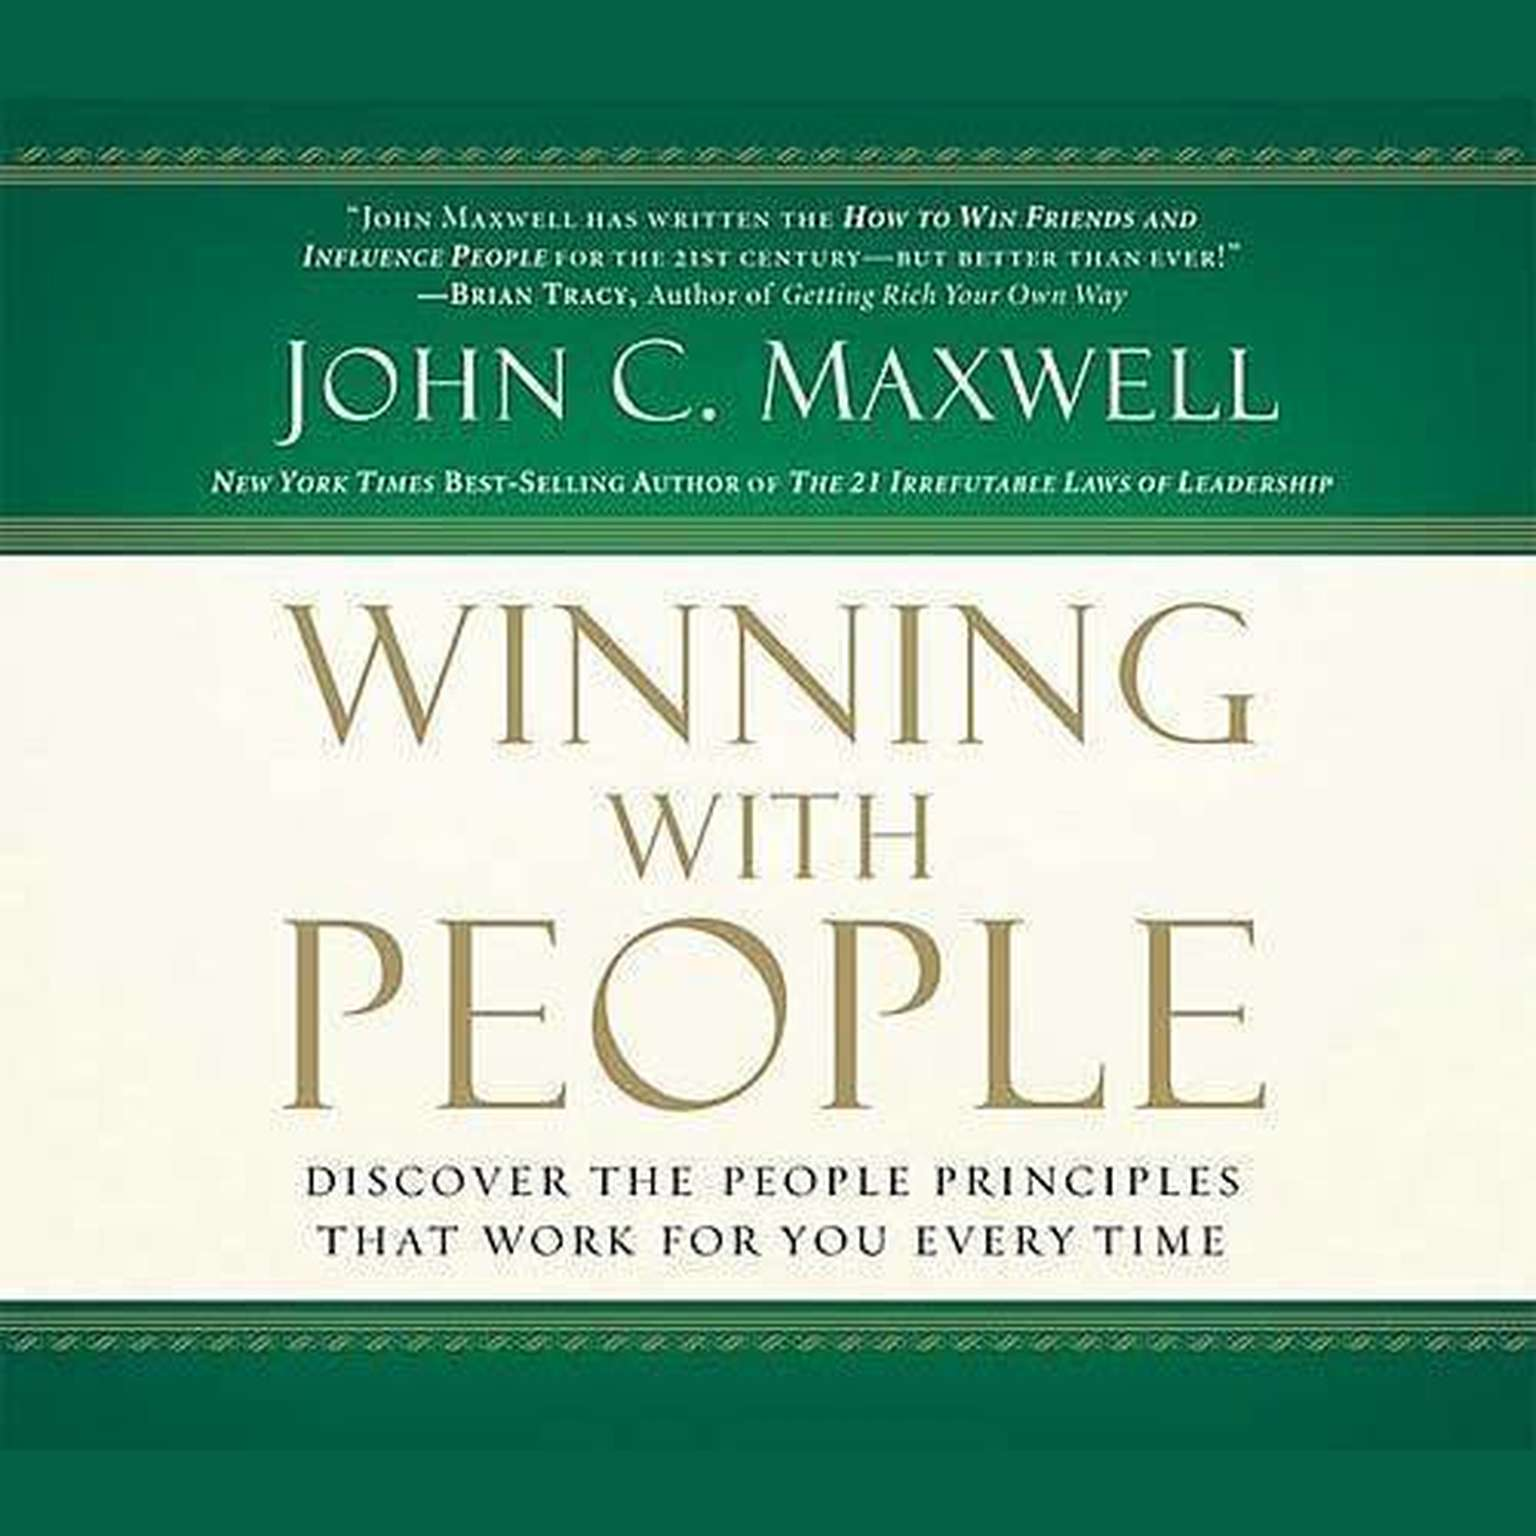 Printable Winning with People: Discover the People Principles That Work for You Every Time Audiobook Cover Art